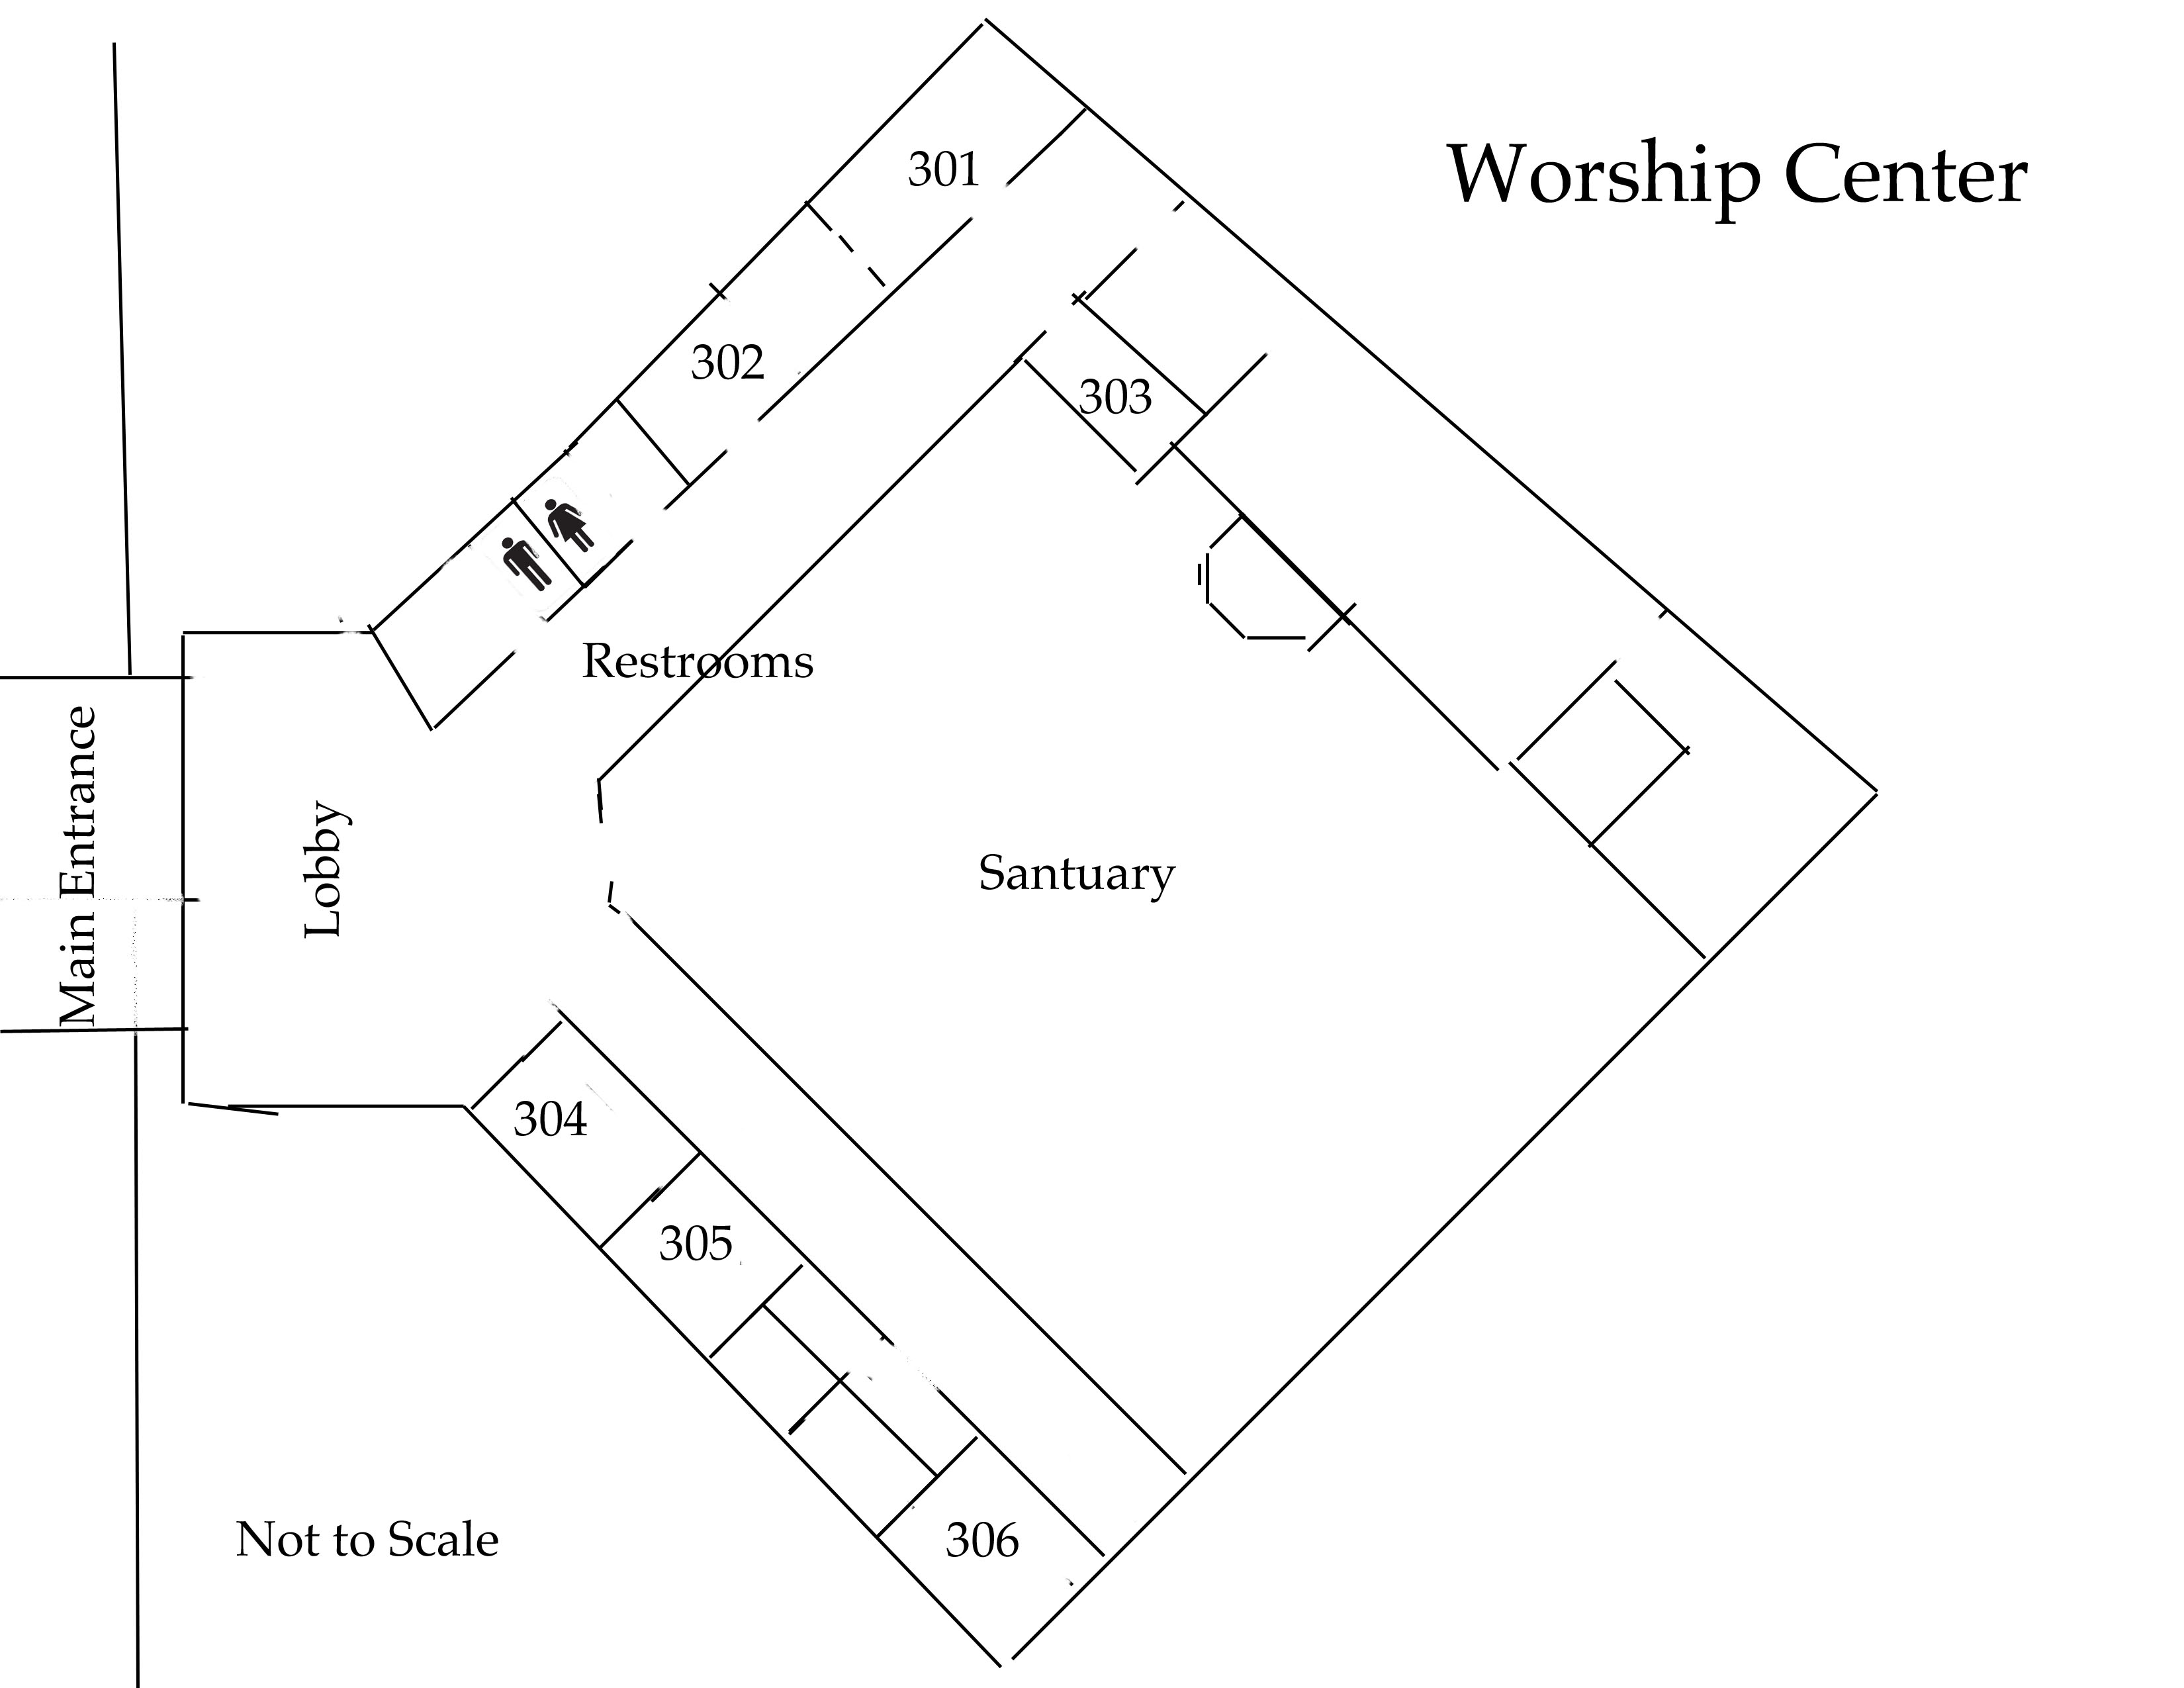 Worship Center Map